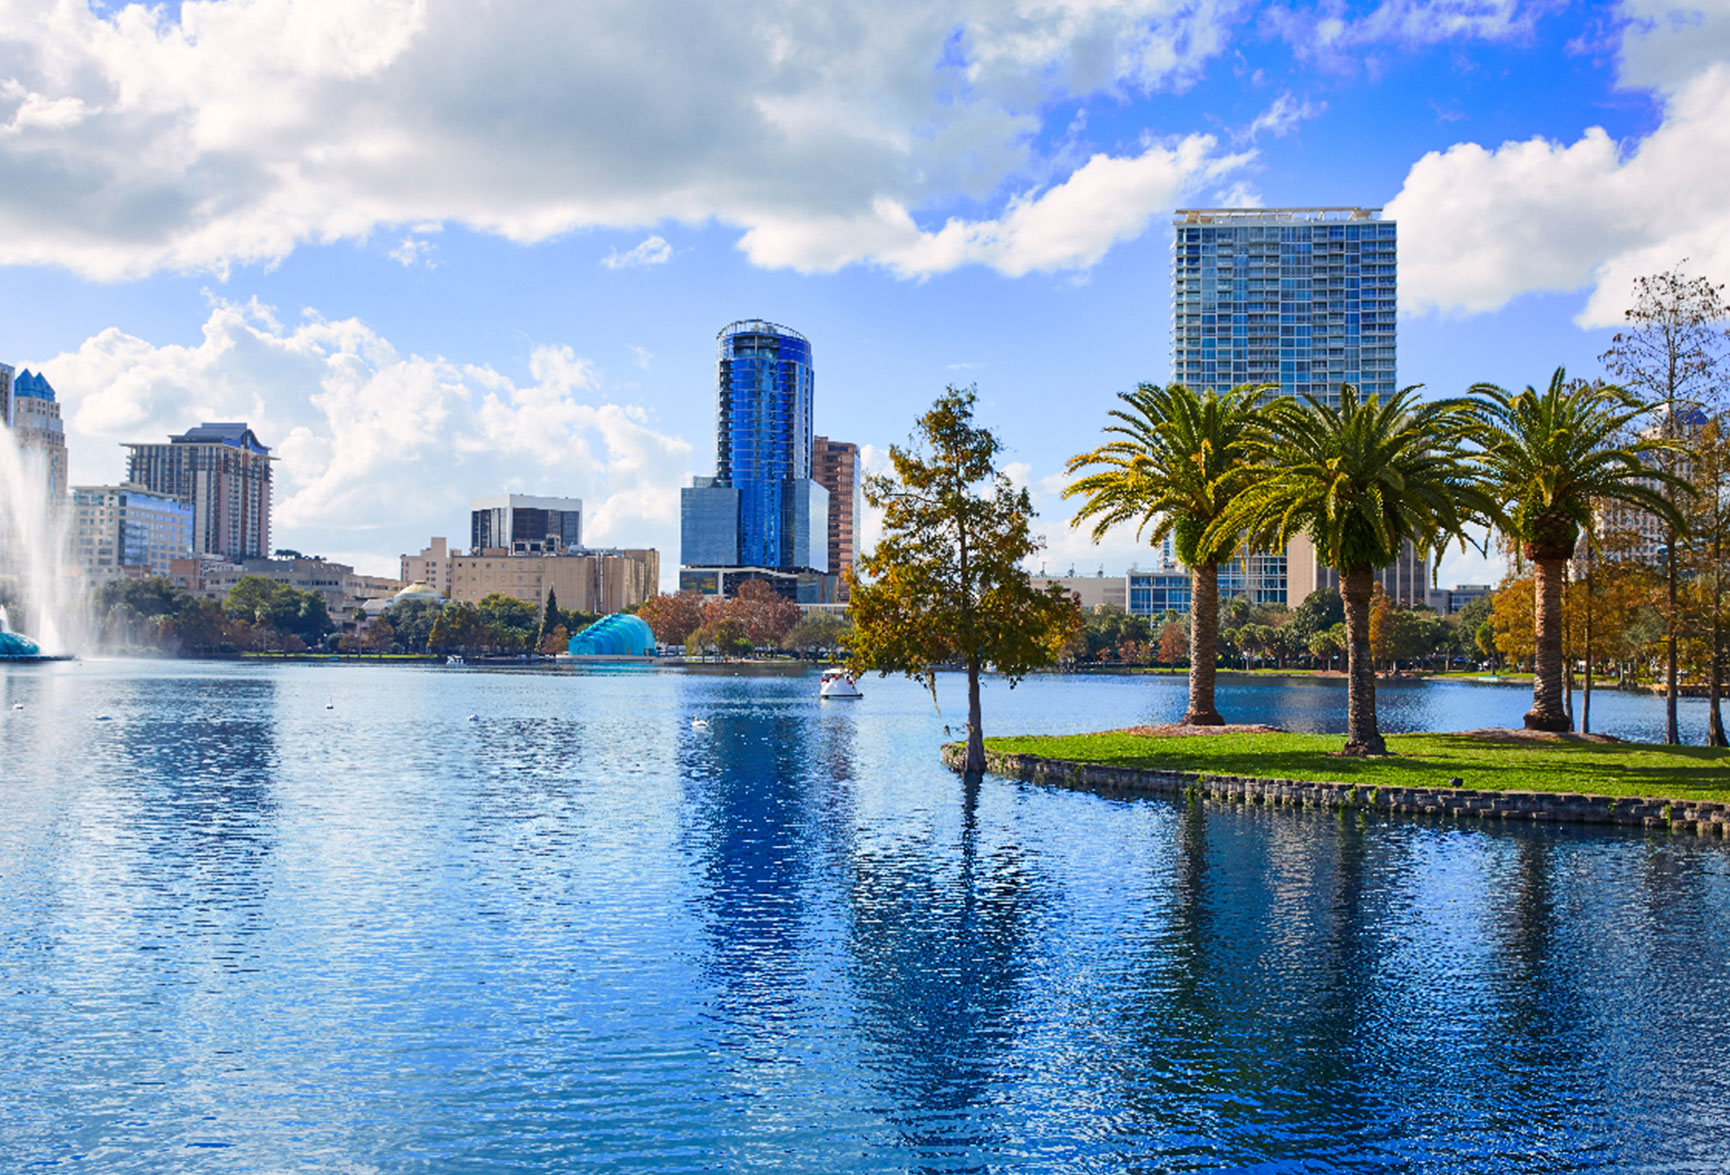 Florida: Number of COVID-19 Infections Continue to Increase